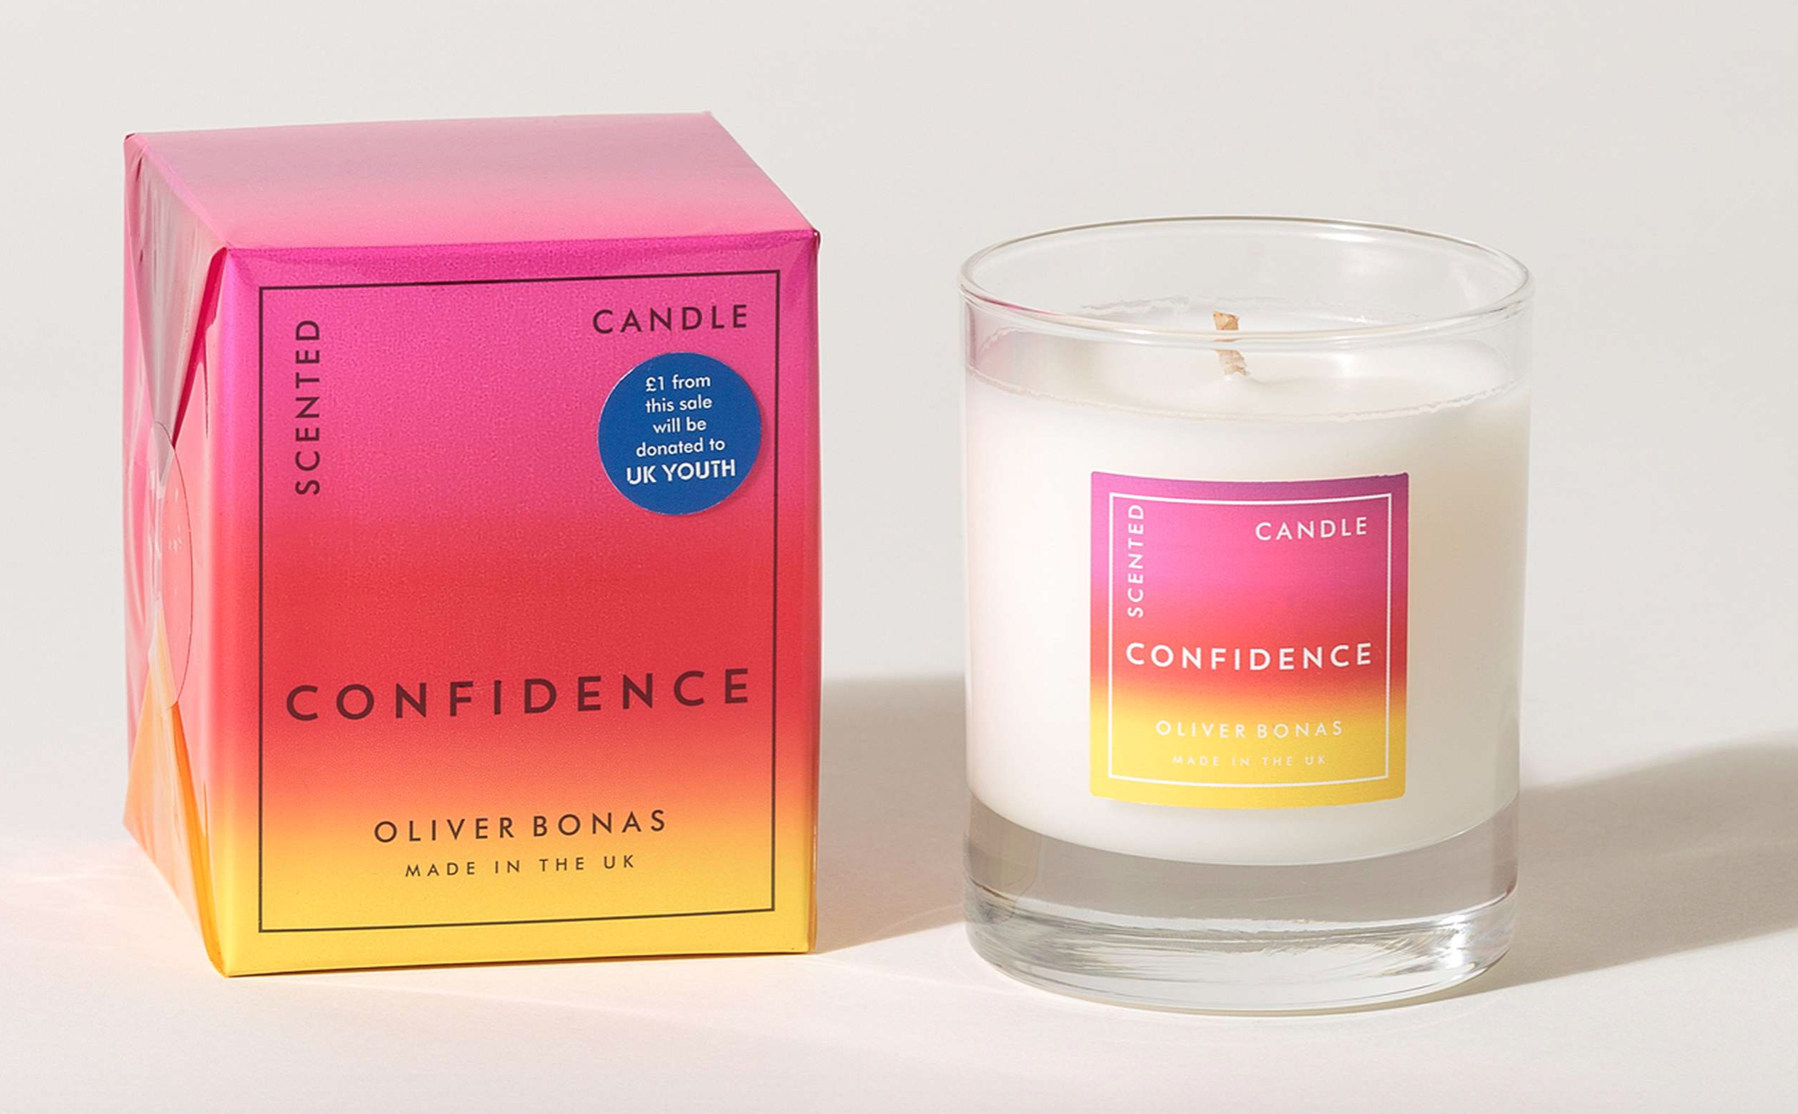 Above:UK Youth is Oliver Bonas' Be Kind charity partner for 2019 and 2020. The retailer has produced a special range of products, with a percentage of each sale price being donated to the charity.